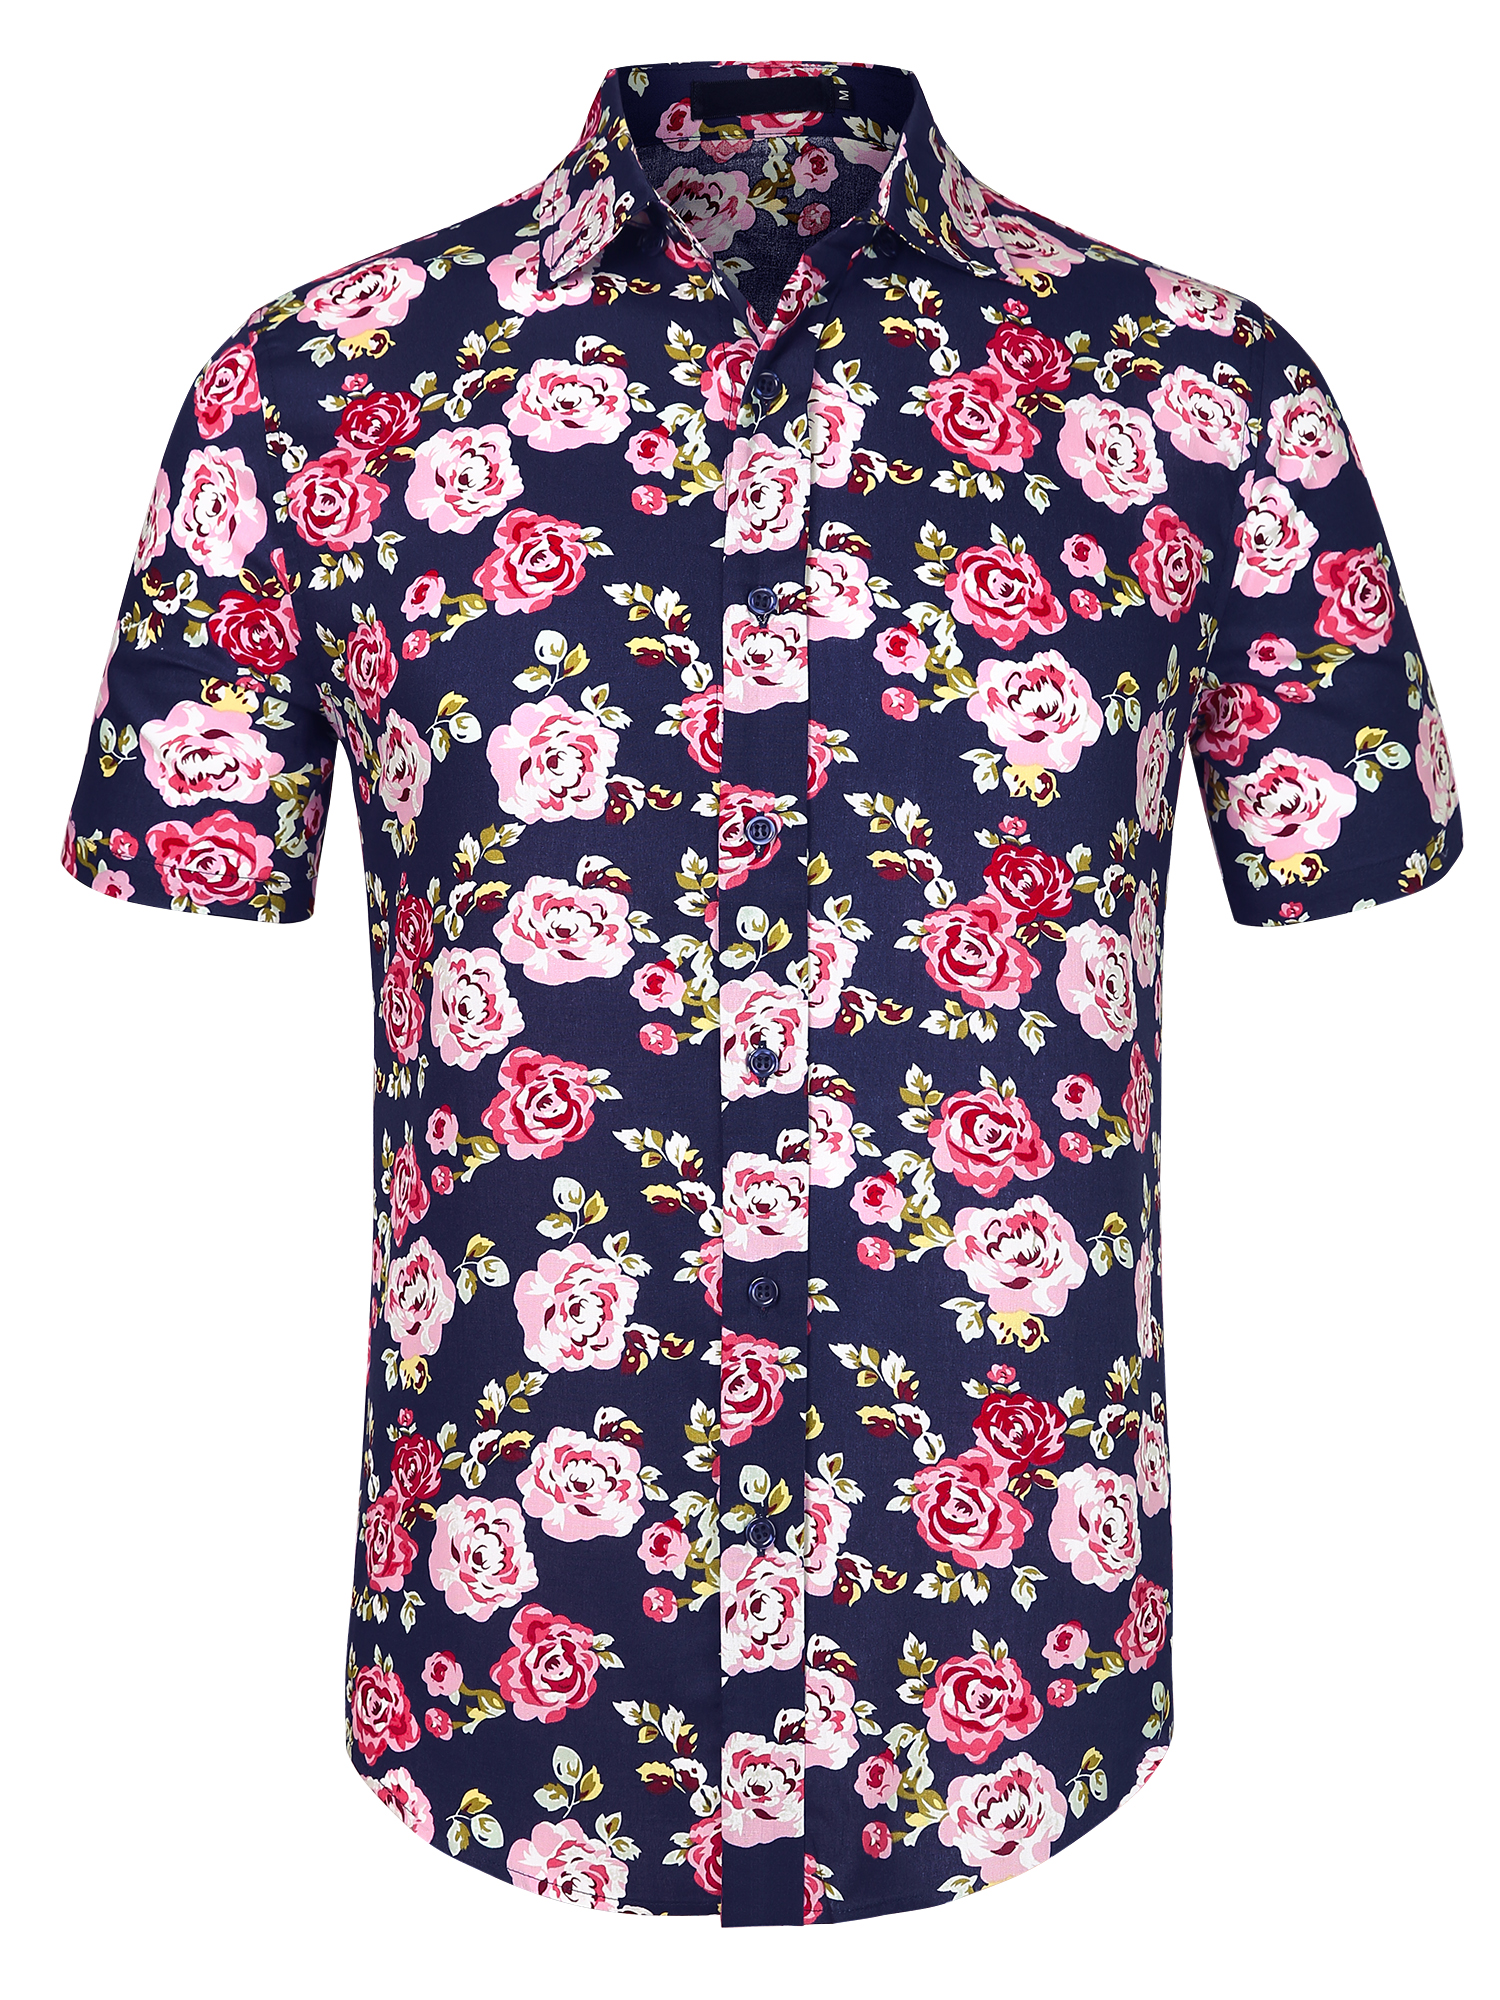 Men Collared Short Sleeves Floral Print Slim Fit Shirt Multicolor S